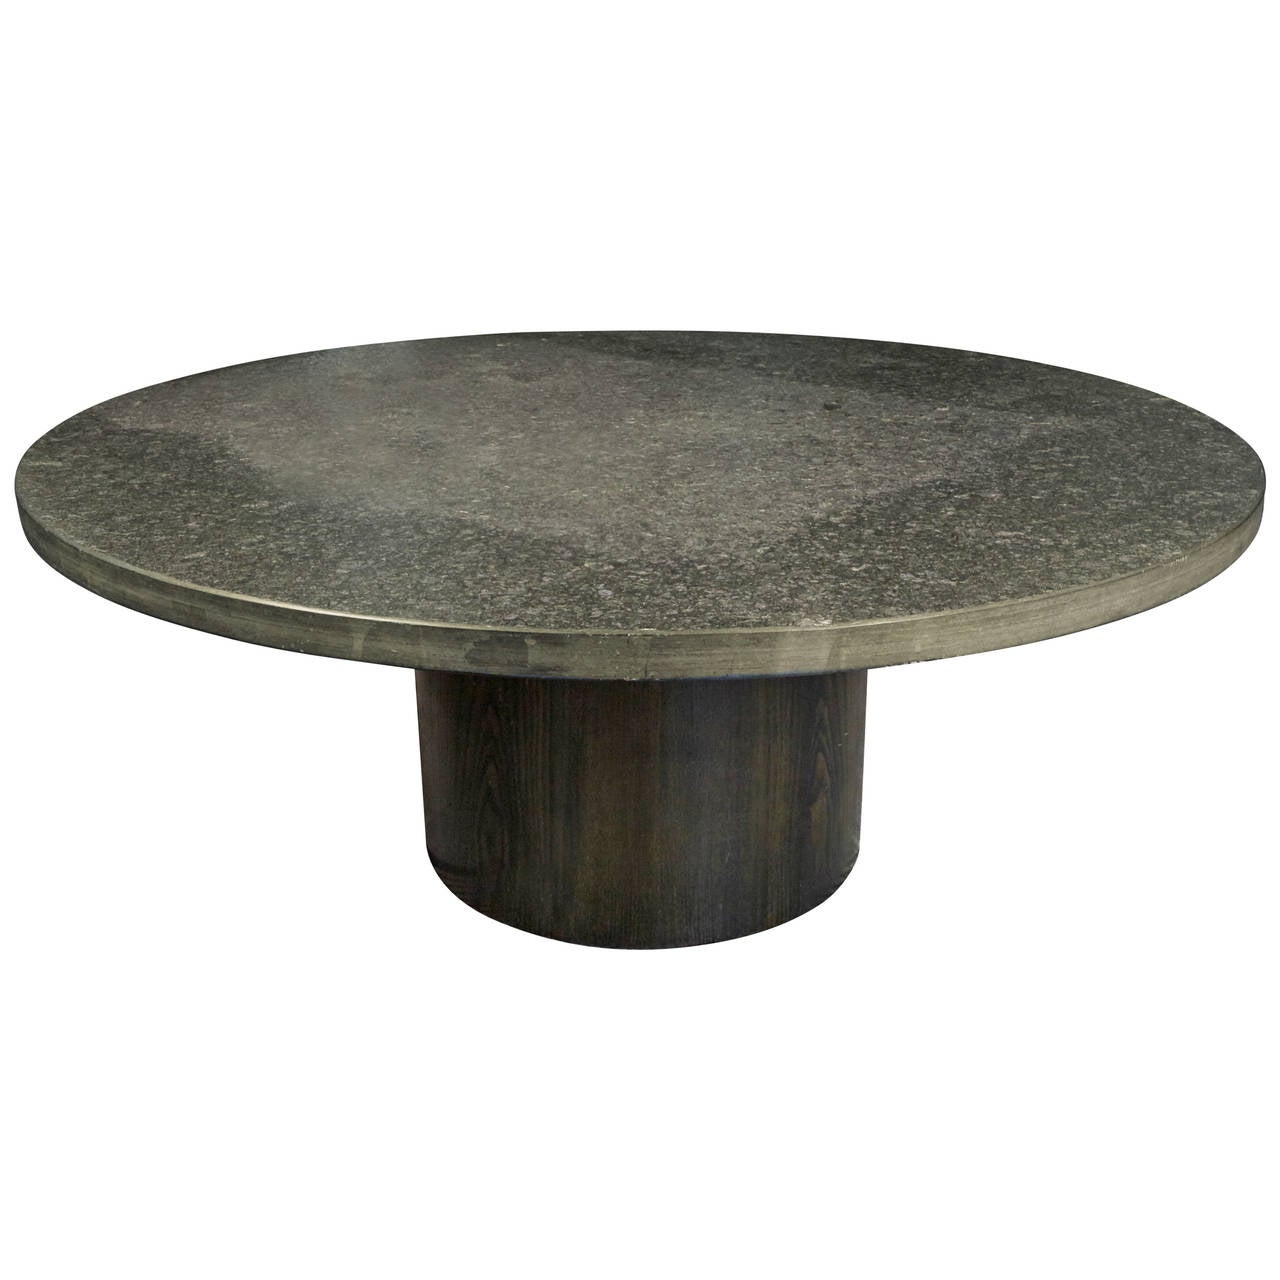 Metal Coffee Table With Slate Tiles: 1970s Grey Slate Stone Coffee Table By Draenert Studios At